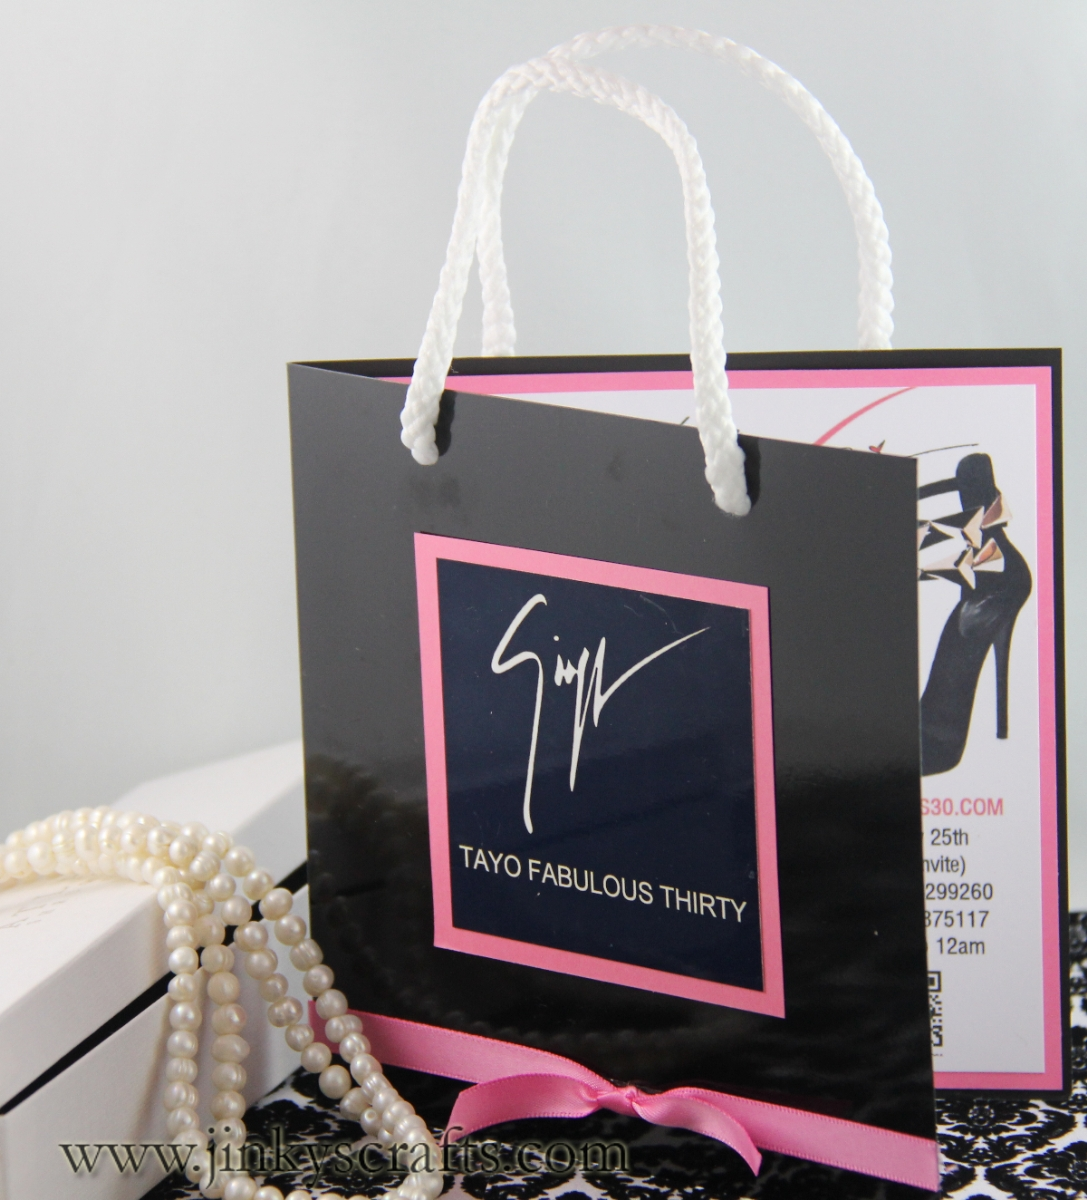 Designer Bag Invitation (Pink & Black)